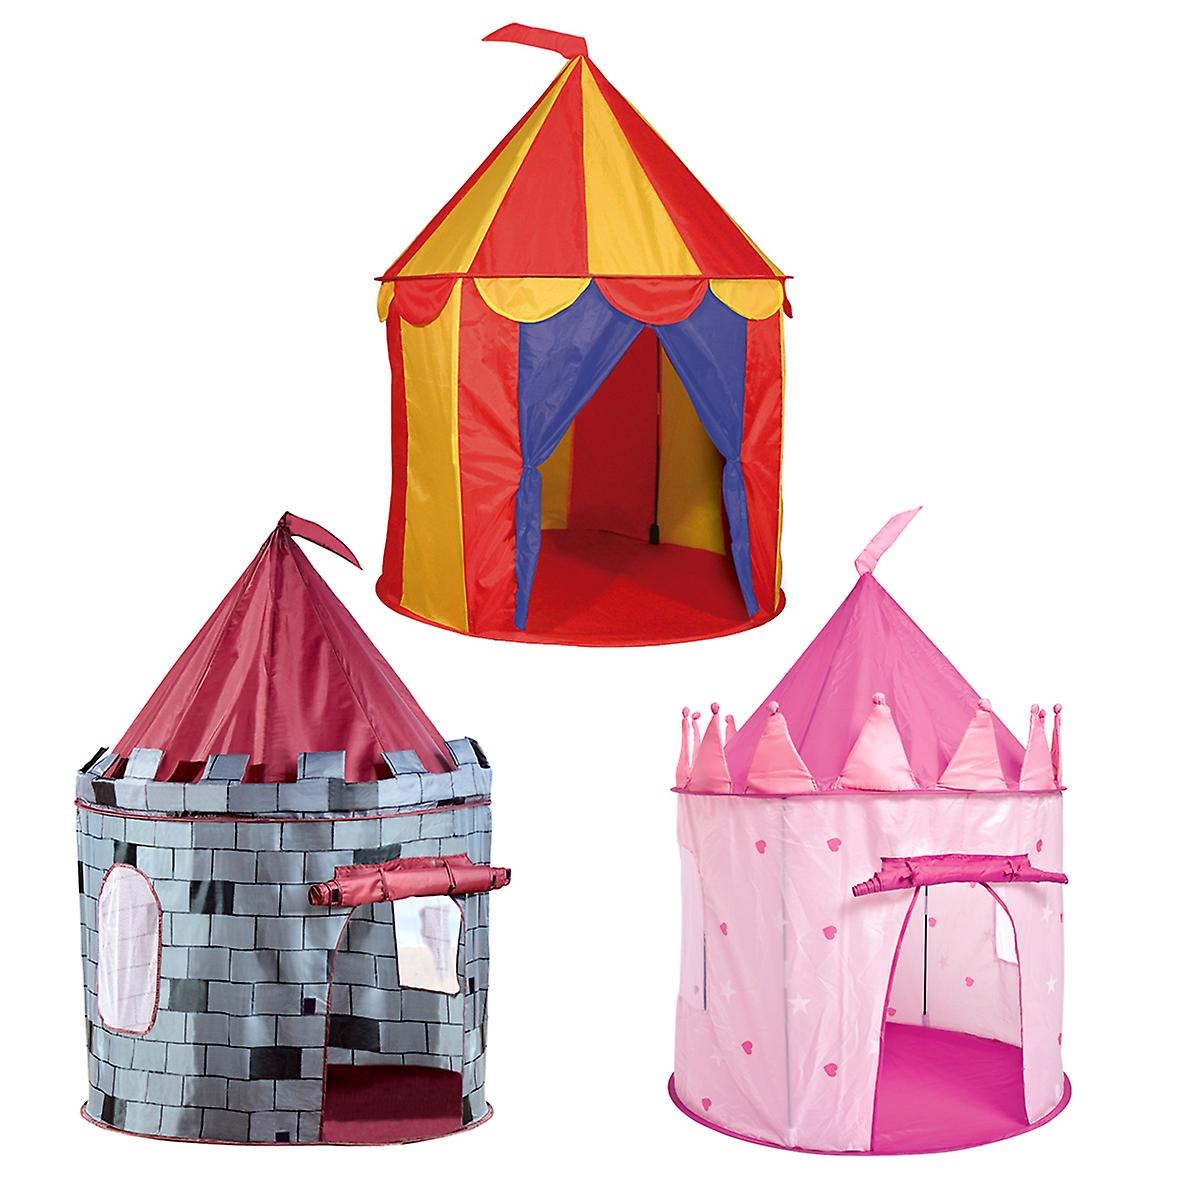 Children's Round  Kids Pop up Play Tent Indoor Outdoor - Princess and Knight Castle Available